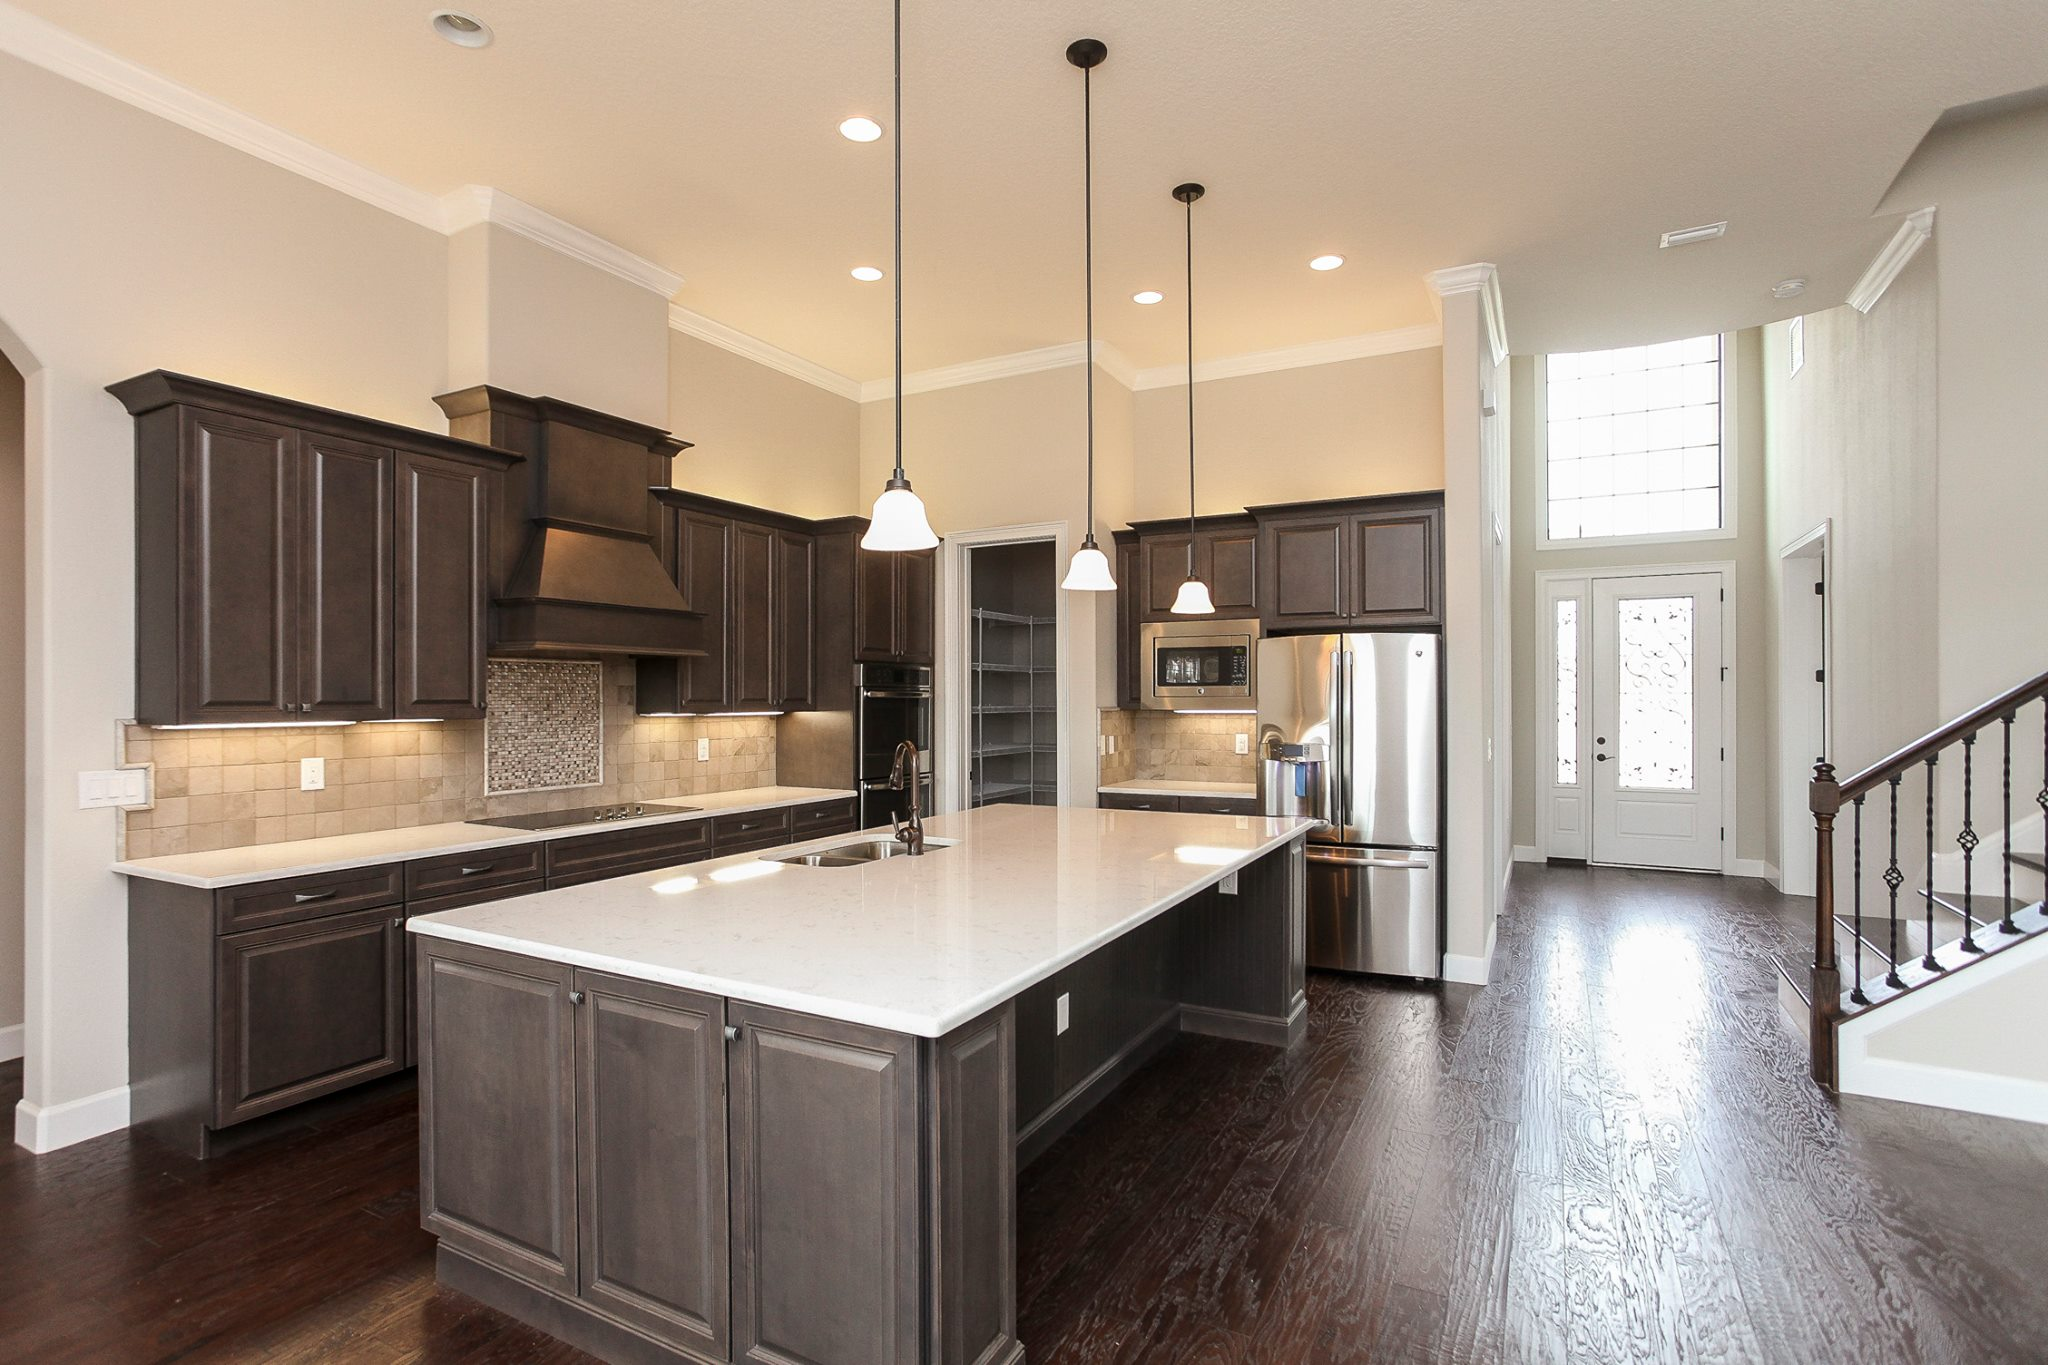 New Kitchen Construction With Marsh Cabinets, Stanisci